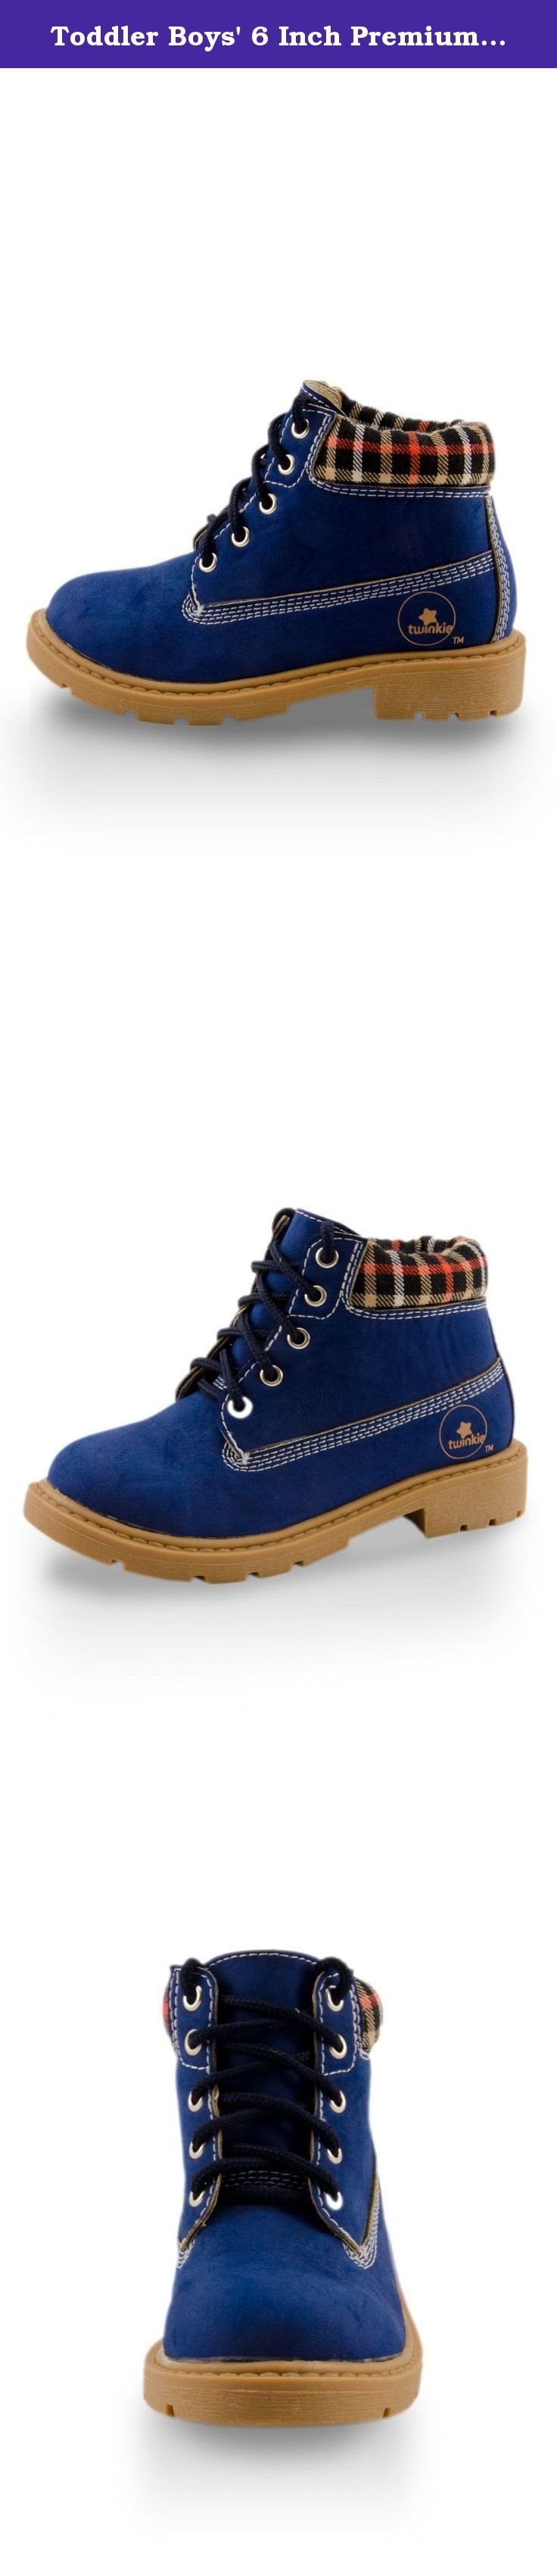 Toddler Boys' 6 Inch Premium Boots Navy Blue 4. Trendy and practical, these 6 inch premium lace up boots will give your little one the fashion-flair reminiscent of Timberland-style boots. Ideal for formal or casual occasions, these shoes will have your toddler looking spiffier than ever!.